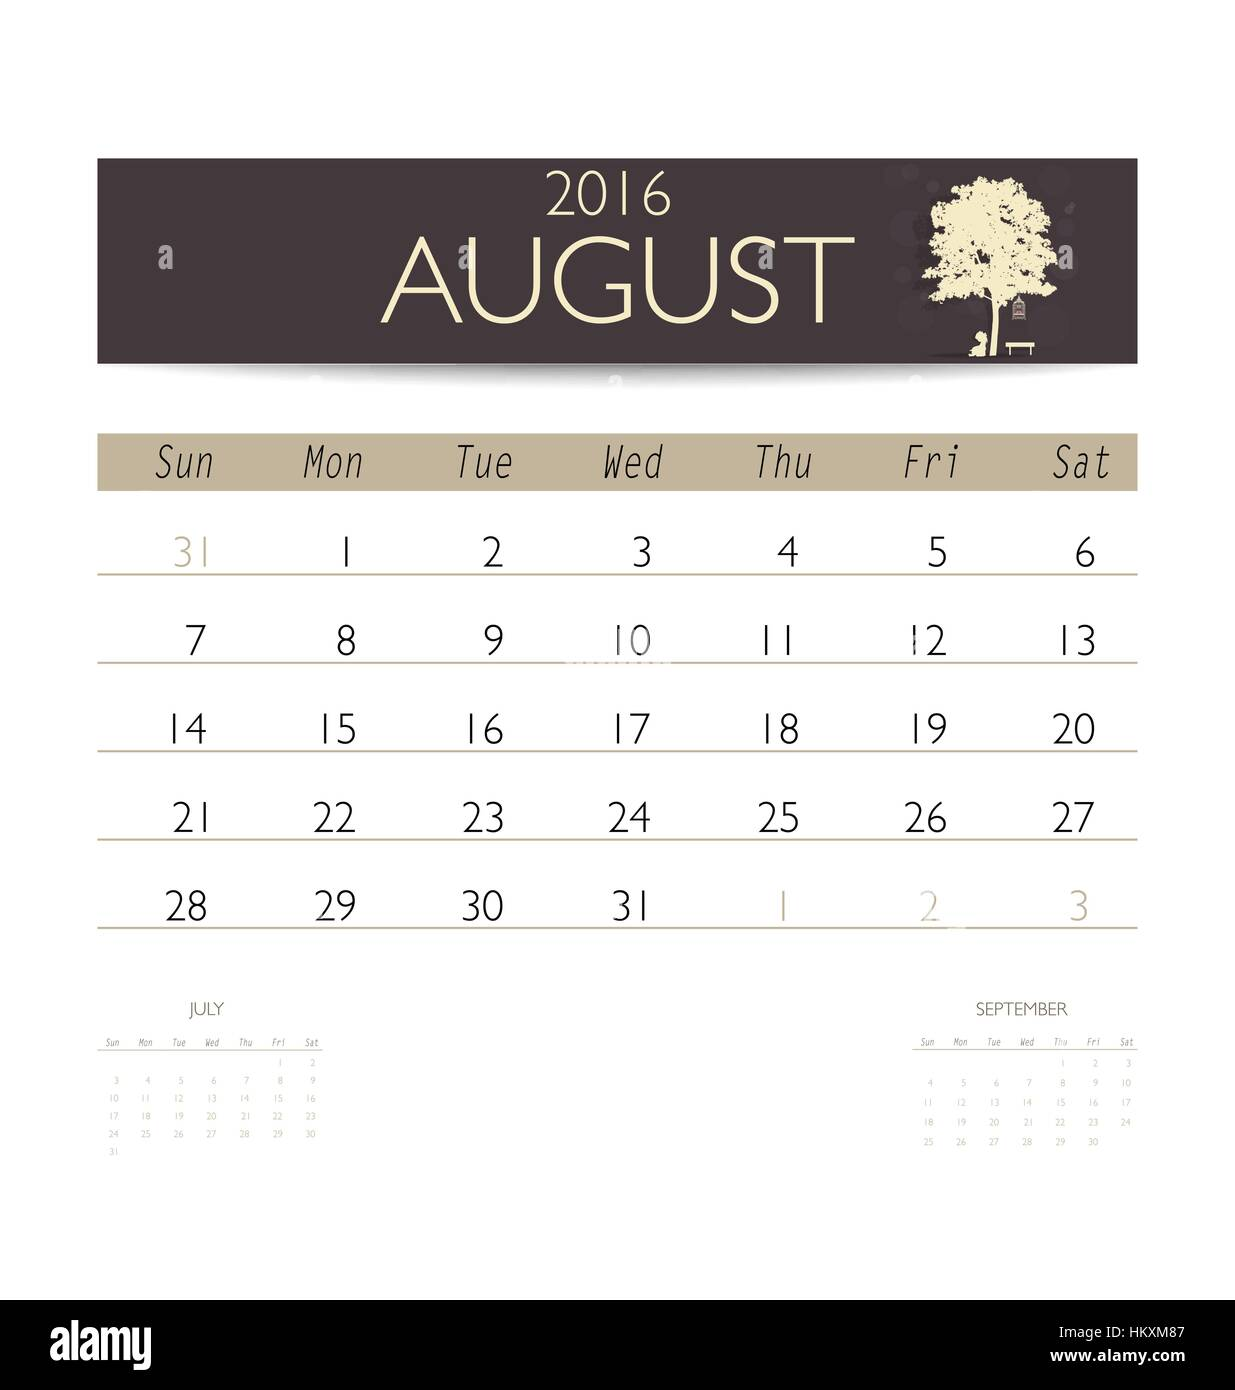 August 2016 Monthly Calendar Planner Stockfotos & August 2016 ...